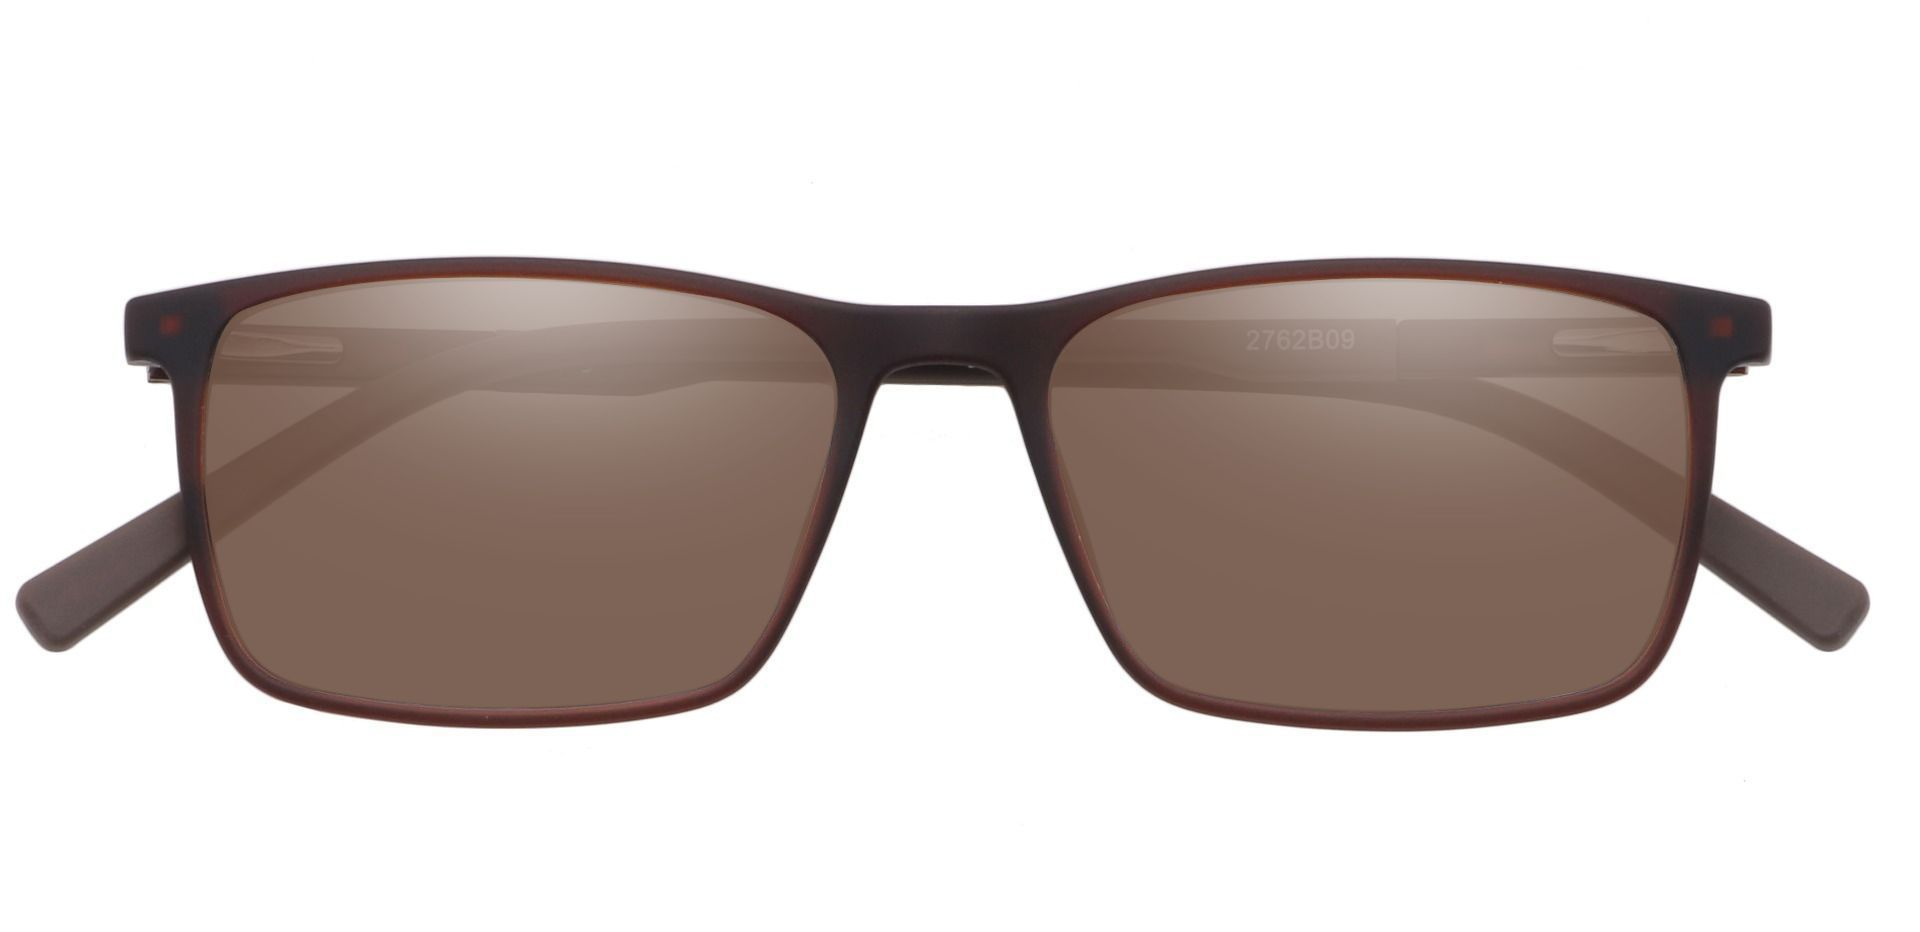 Helga Rectangle Prescription Sunglasses - Brown Frame With Brown Lenses